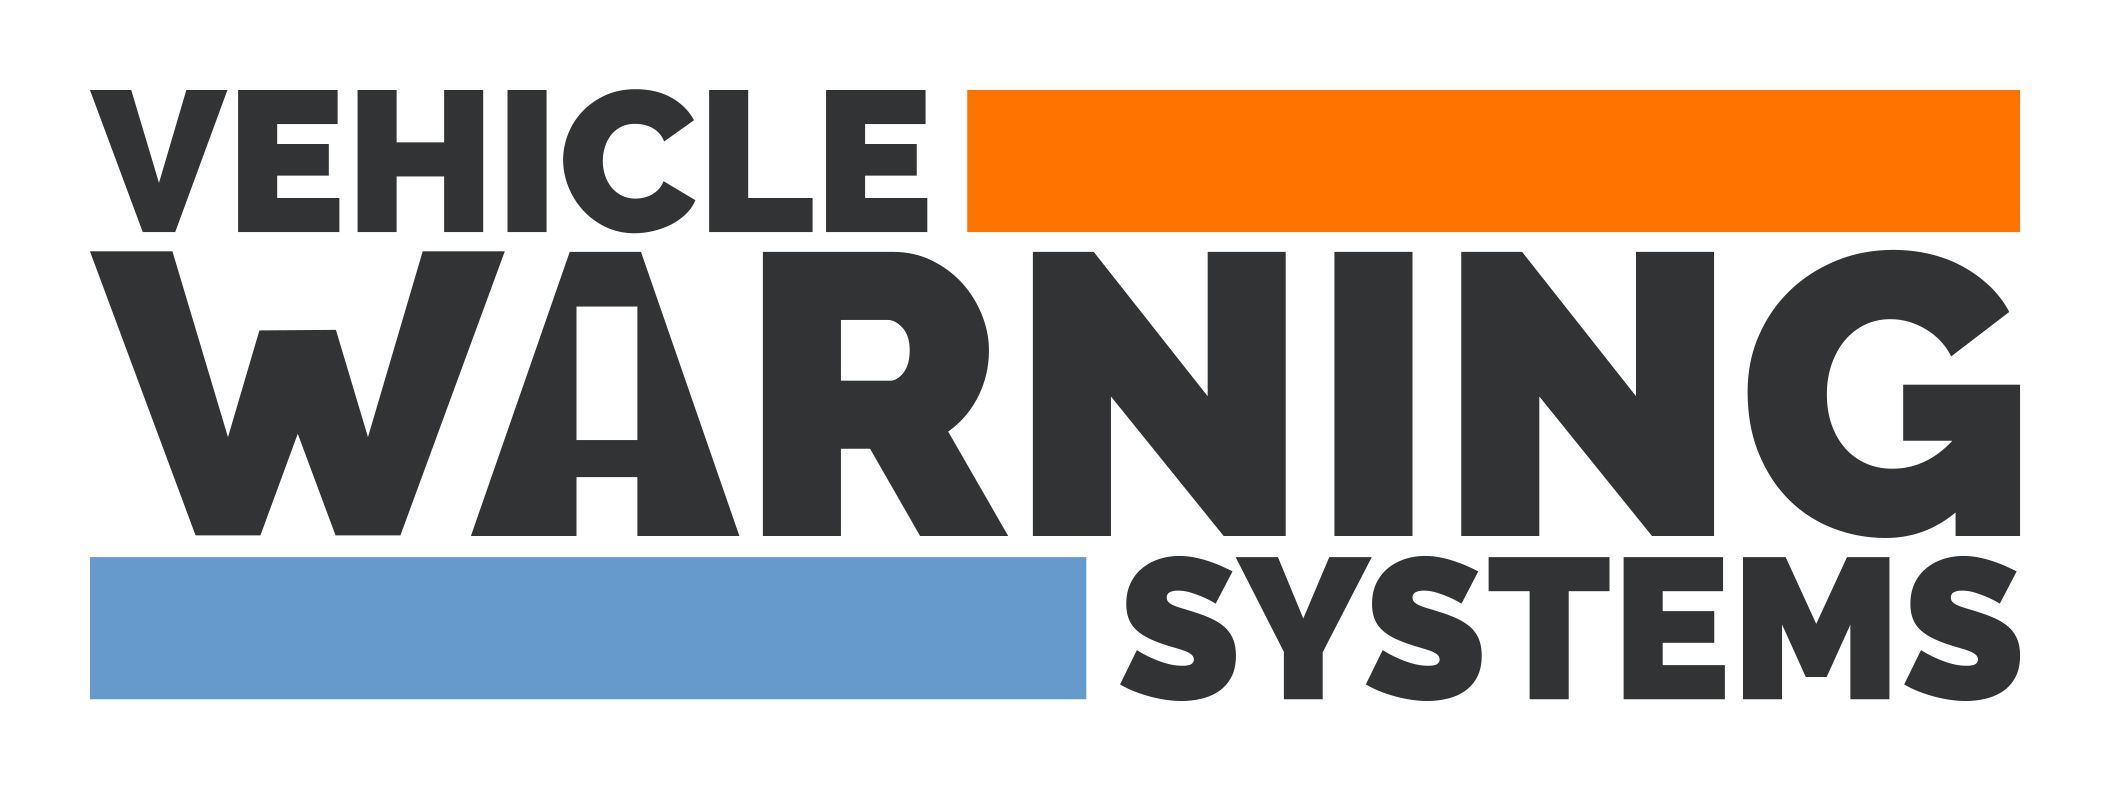 Vehicle Warning Systems Ltd